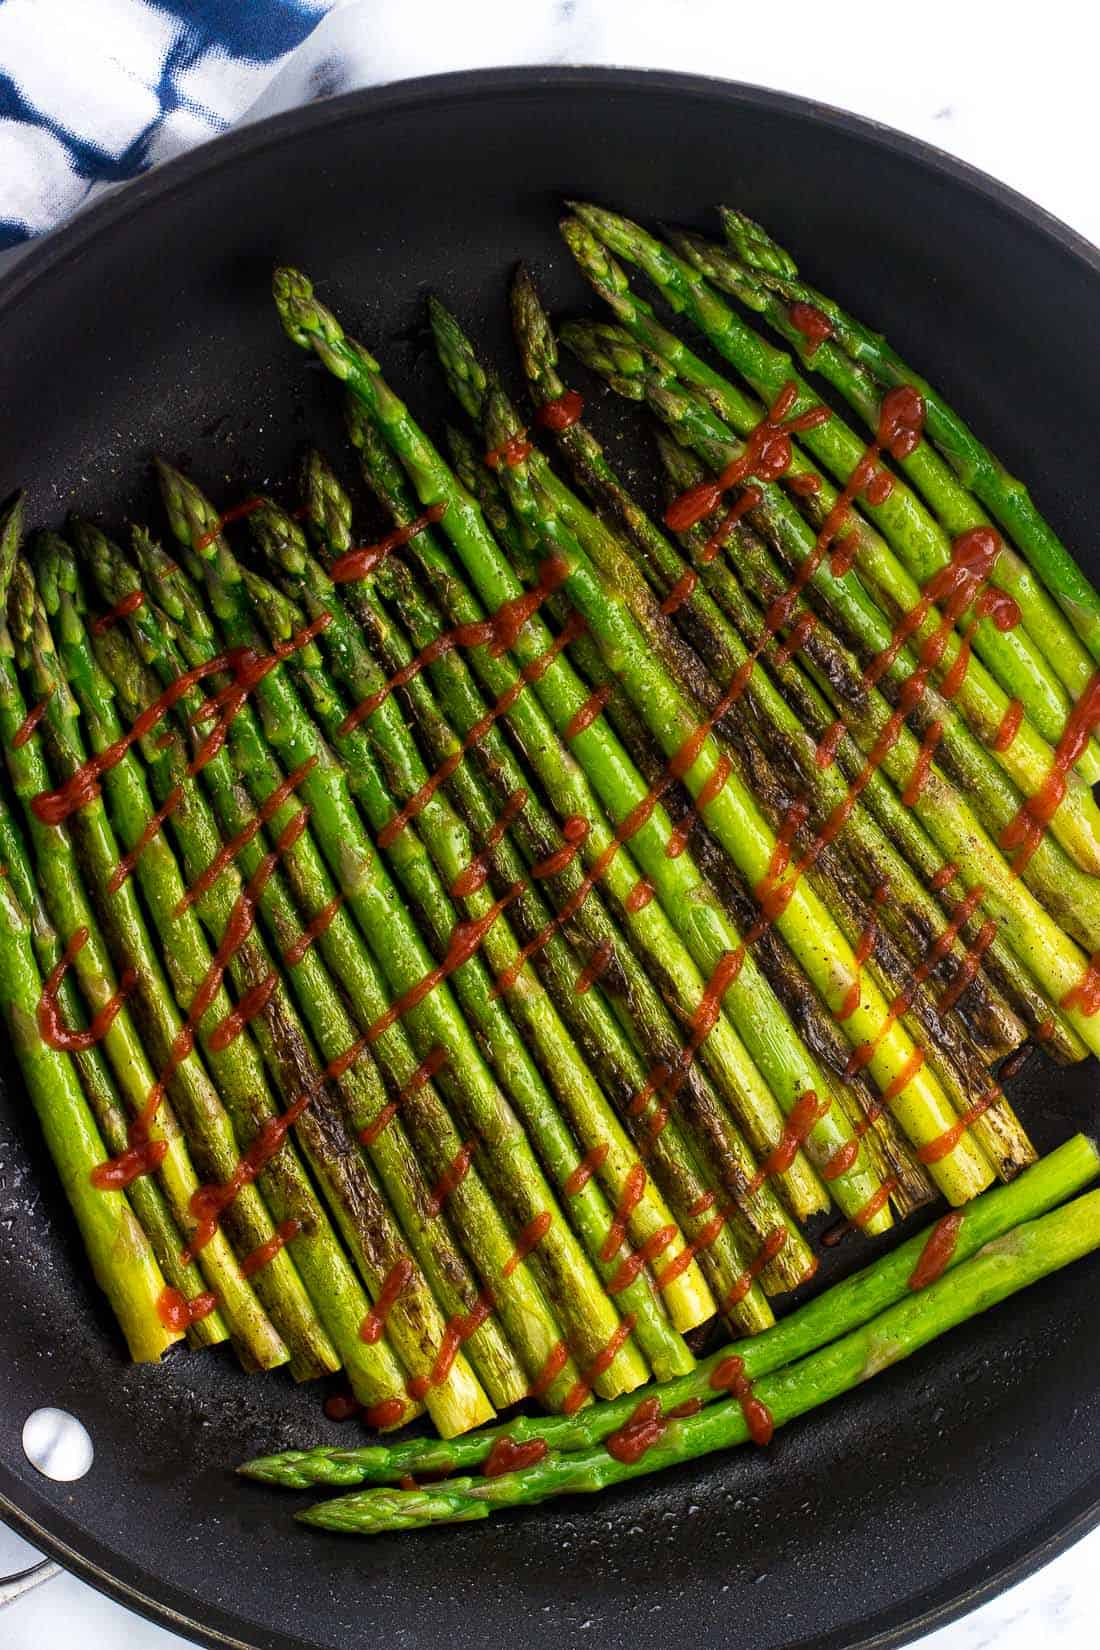 Asparagus in a large skillet drizzled with sriracha